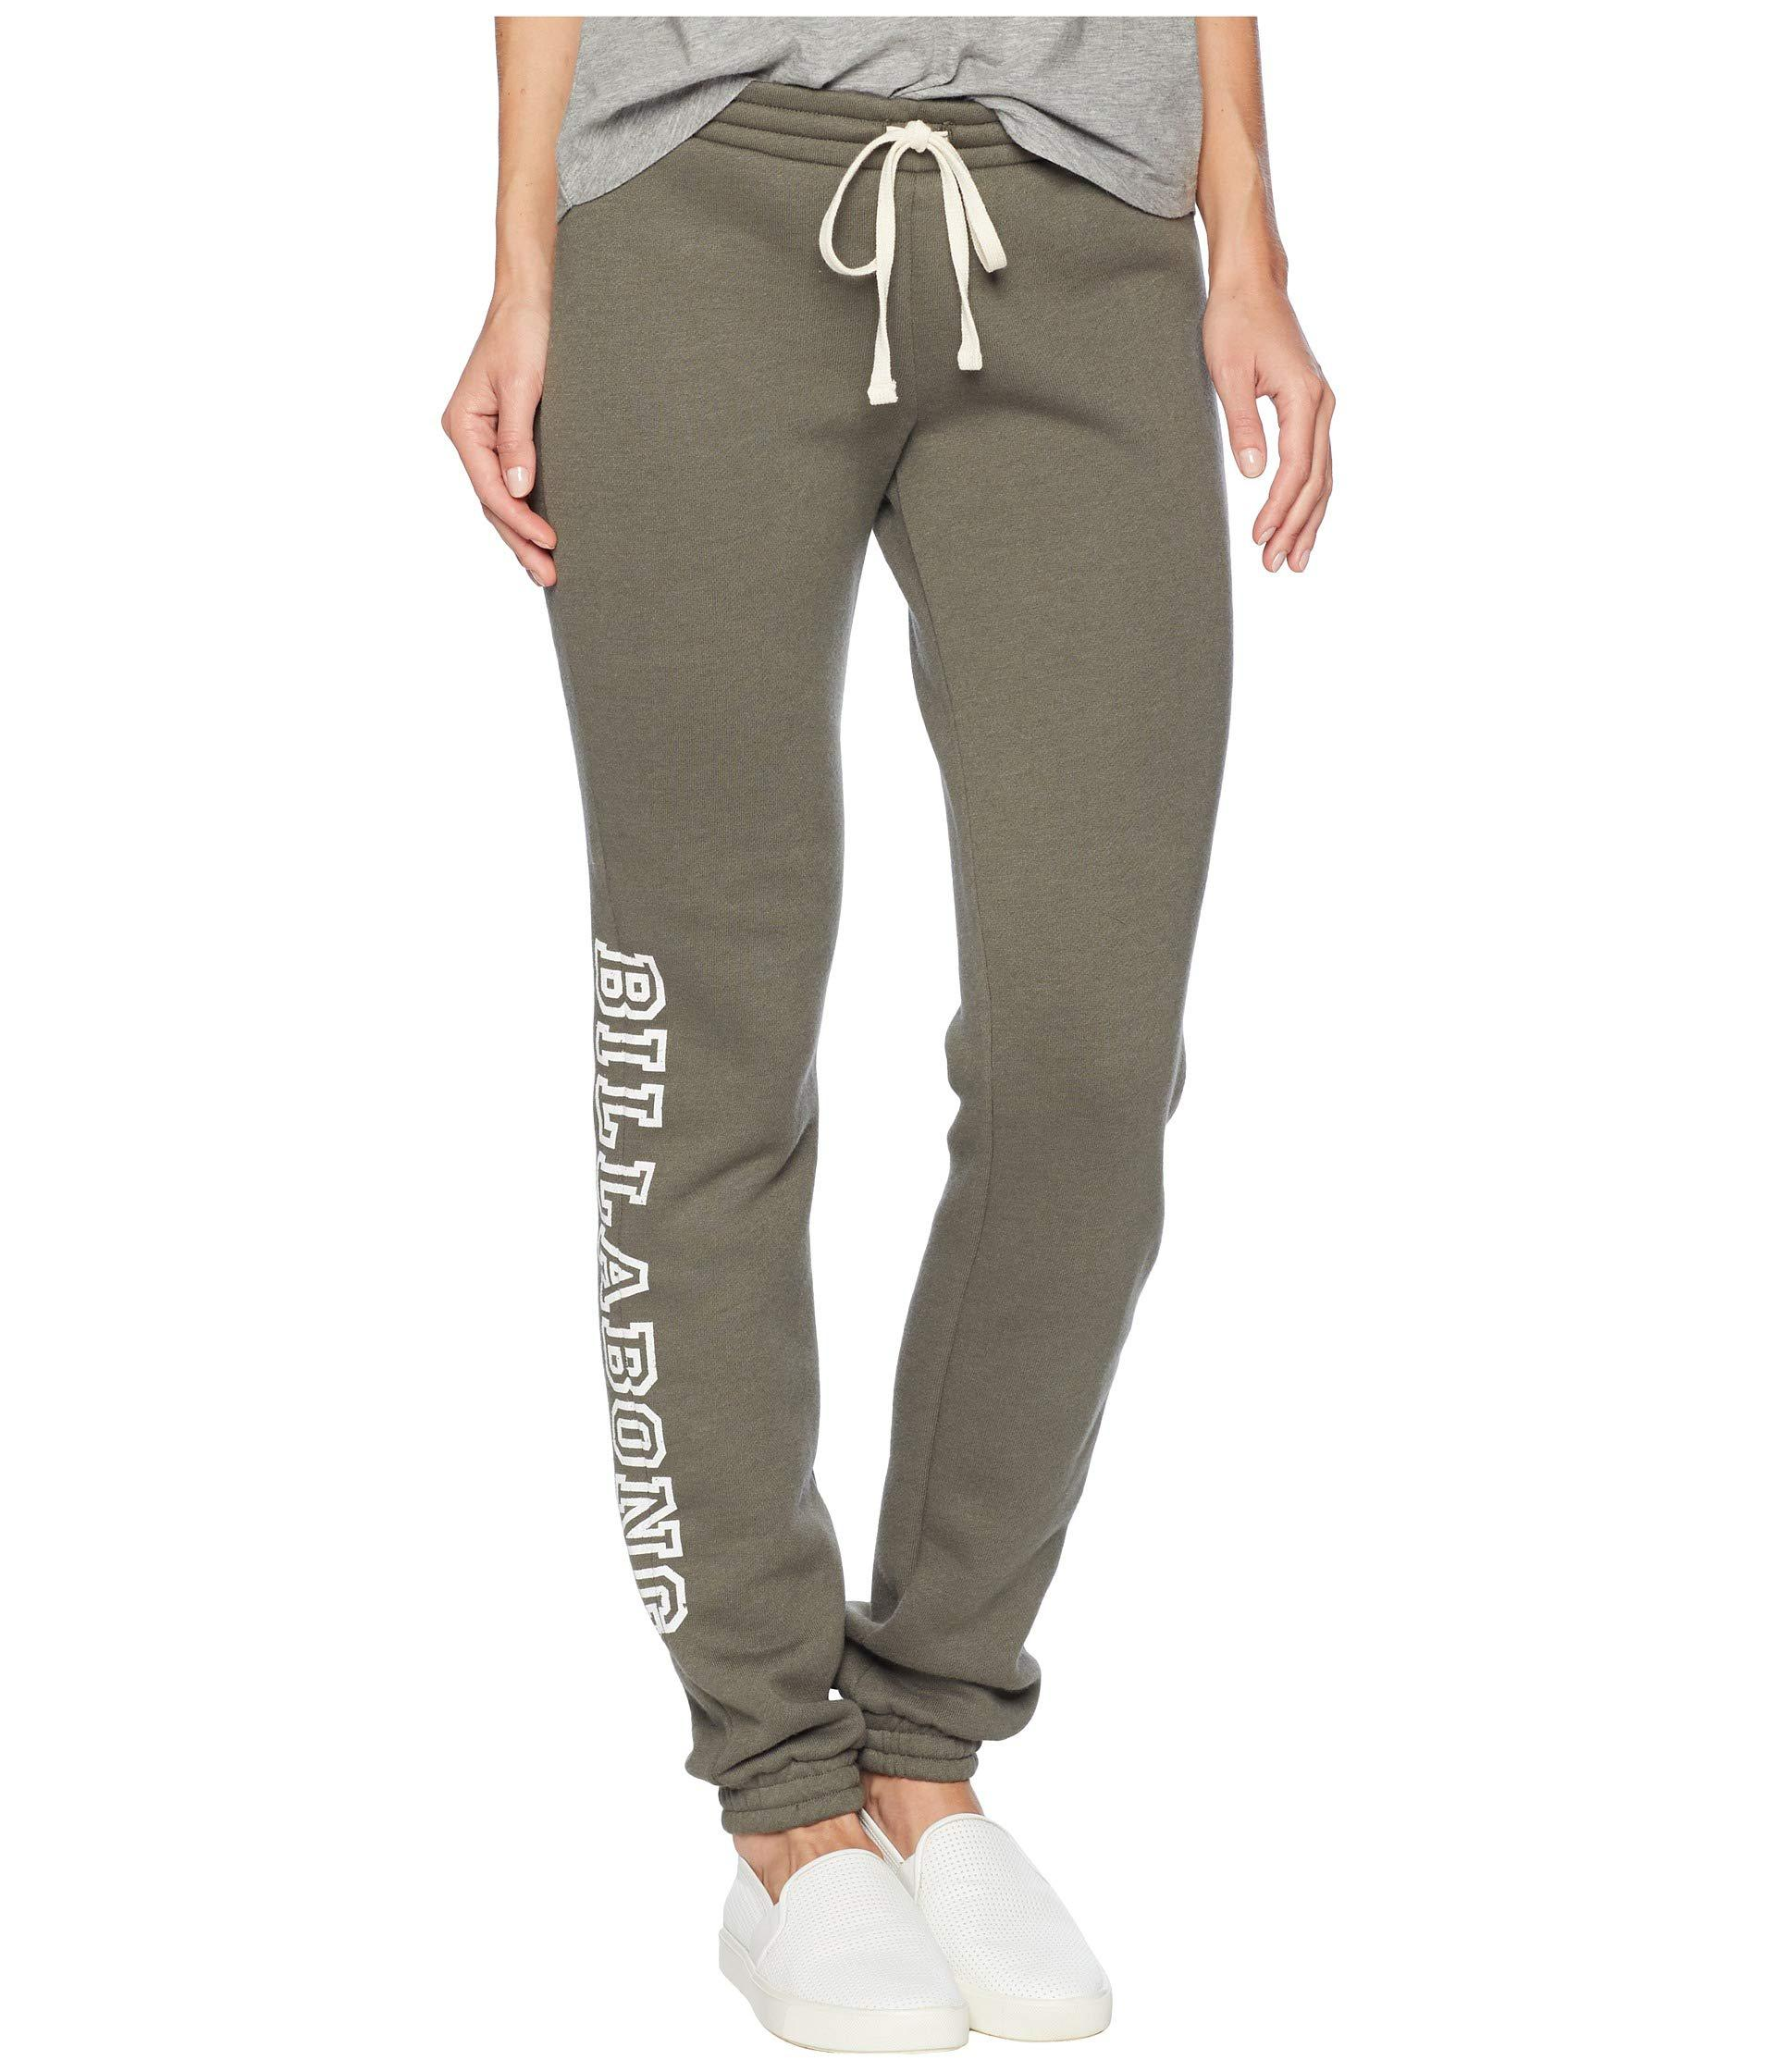 18f46a8a6f4b8 Lyst - Billabong Night Riders Pants (olive) Women's Casual Pants in ...